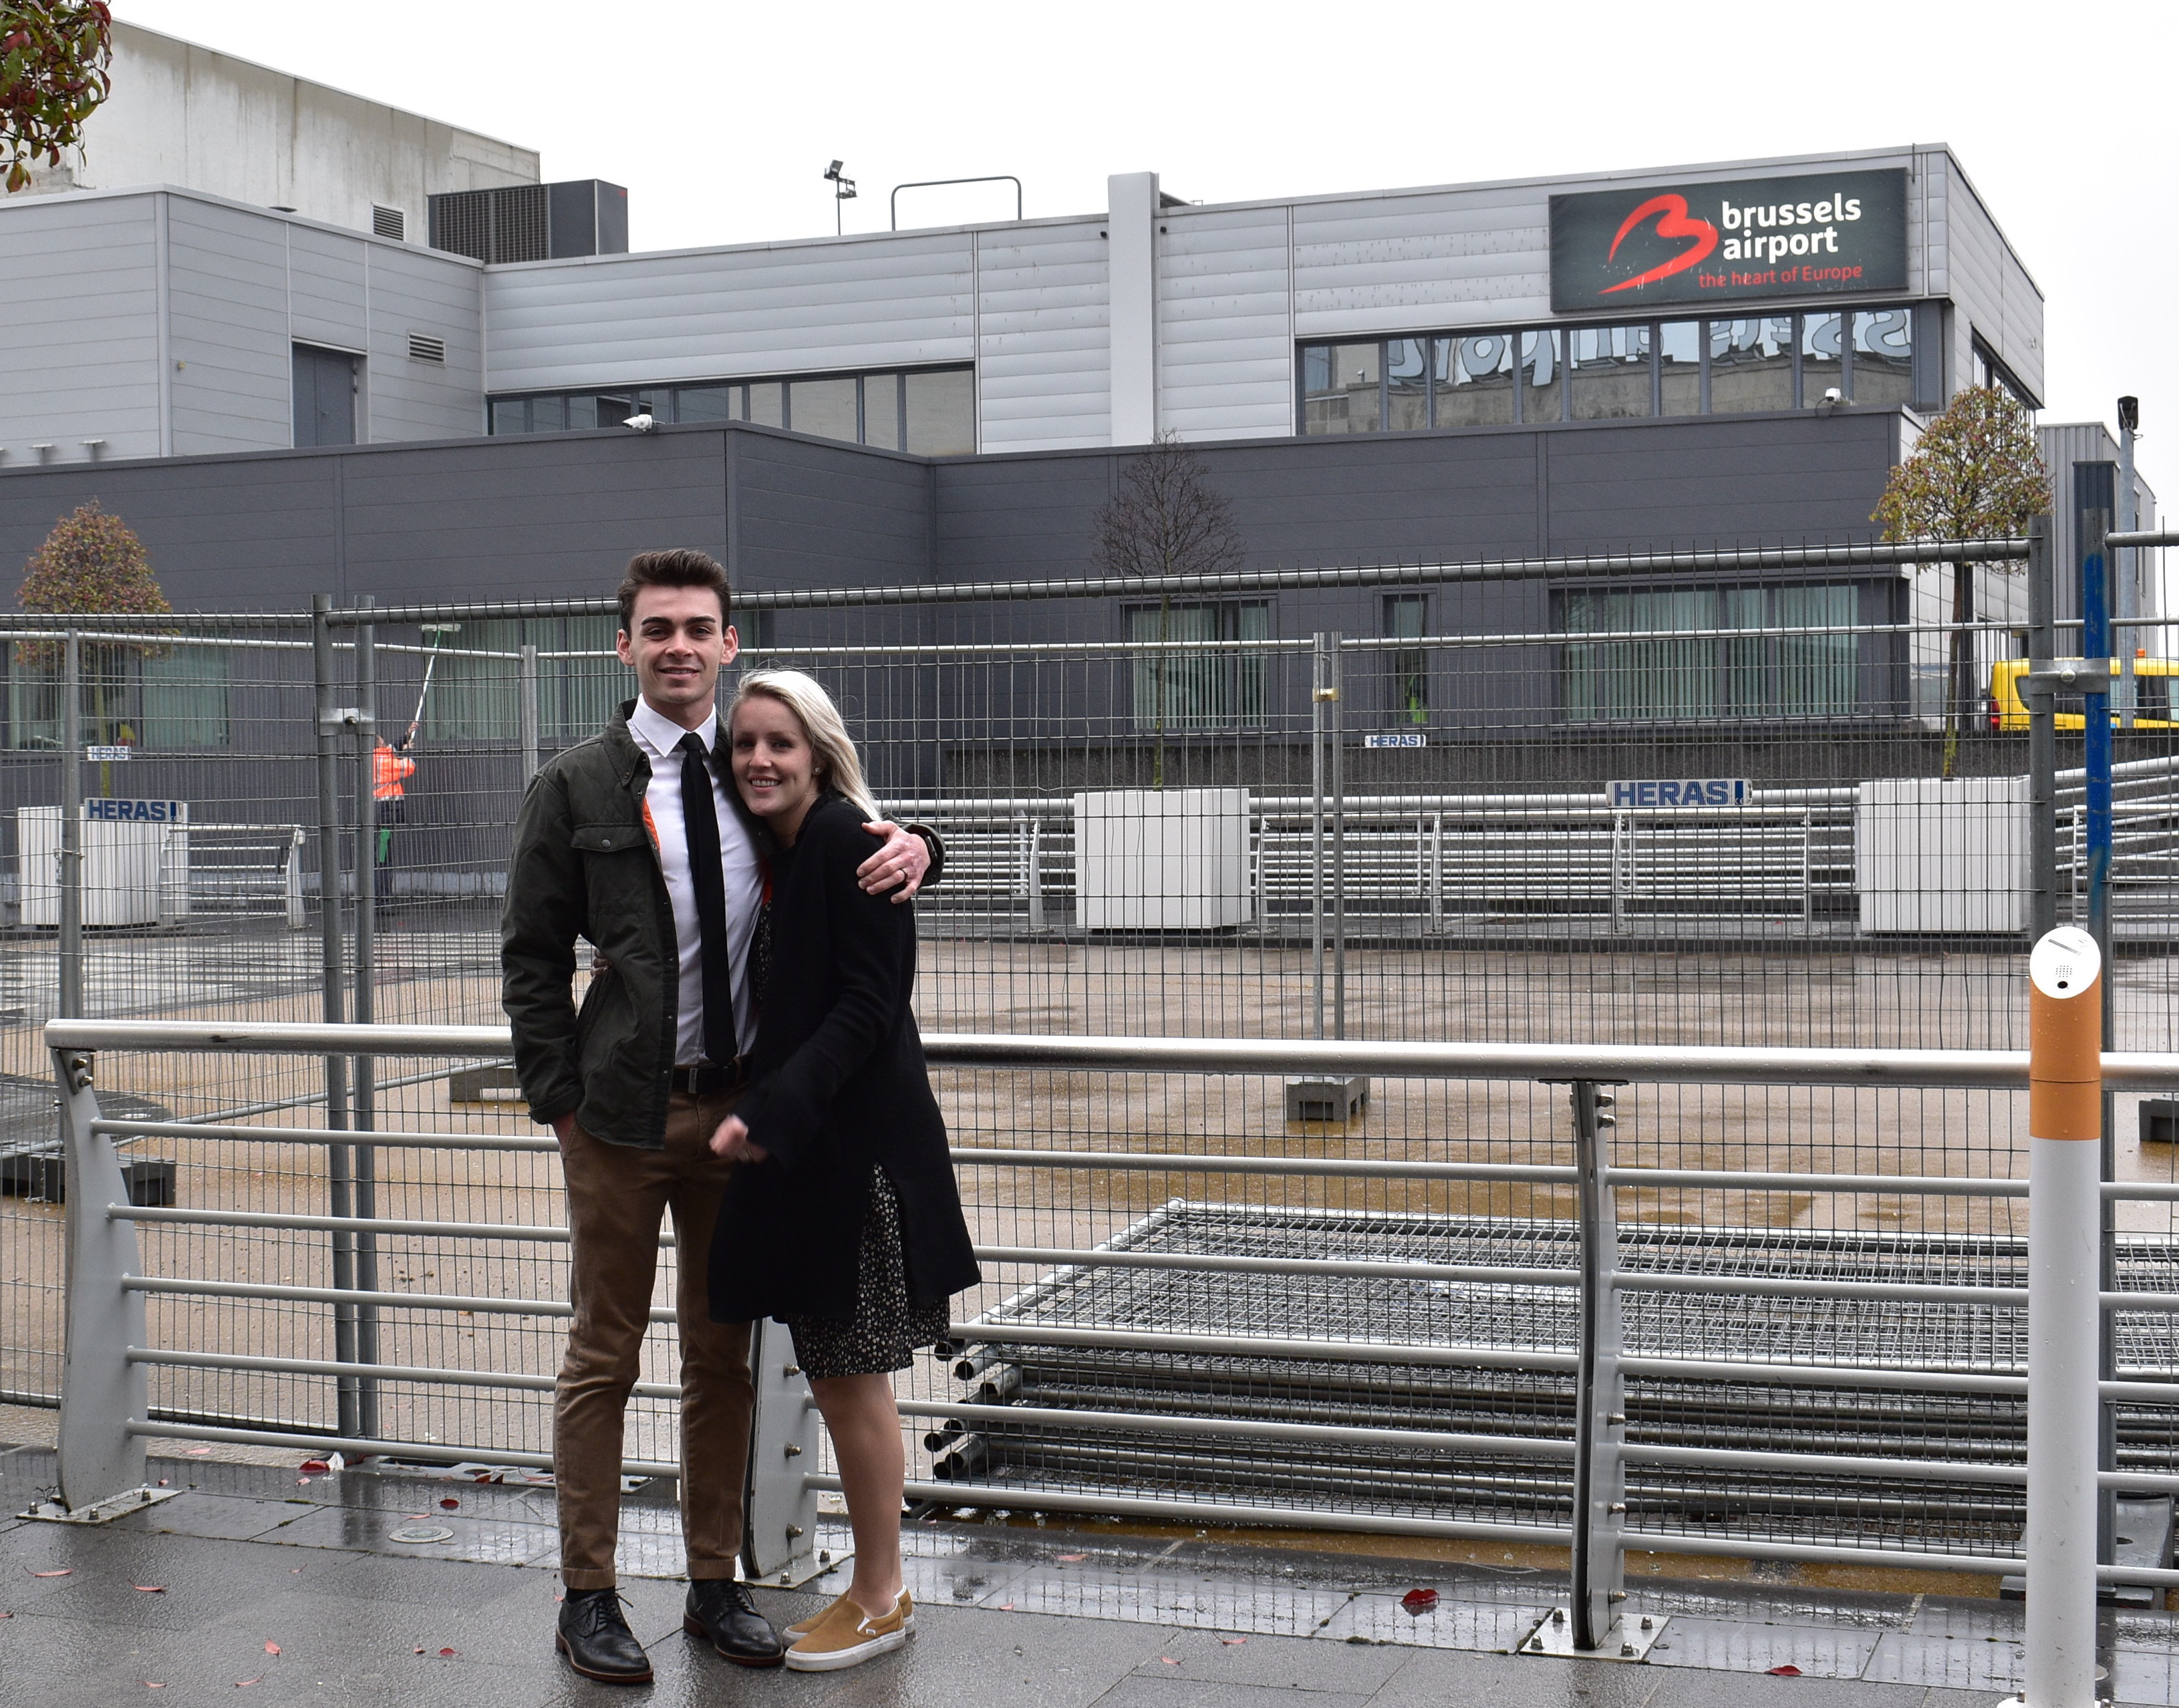 Dres and Elle Empey returned to the Brussels Airport for the two-year anniversary of the Brussels terrorist bombing.